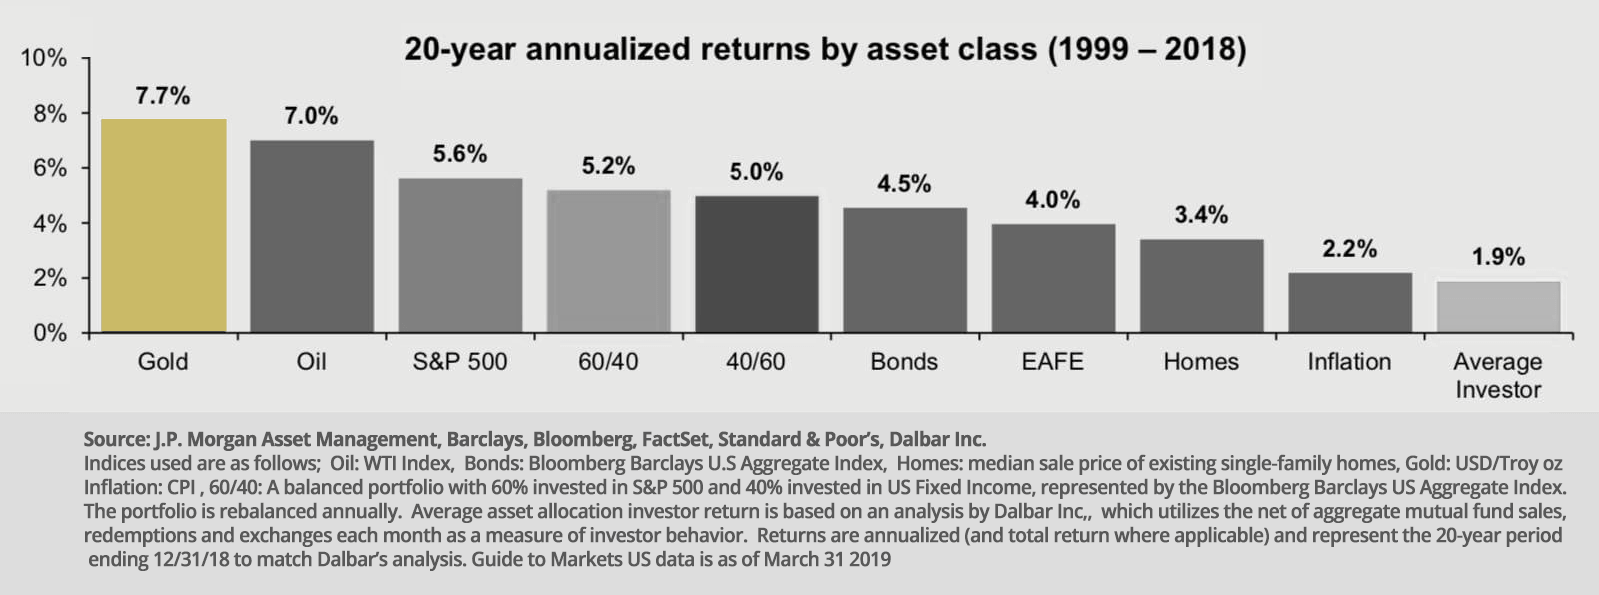 gold as an investment versus other assets